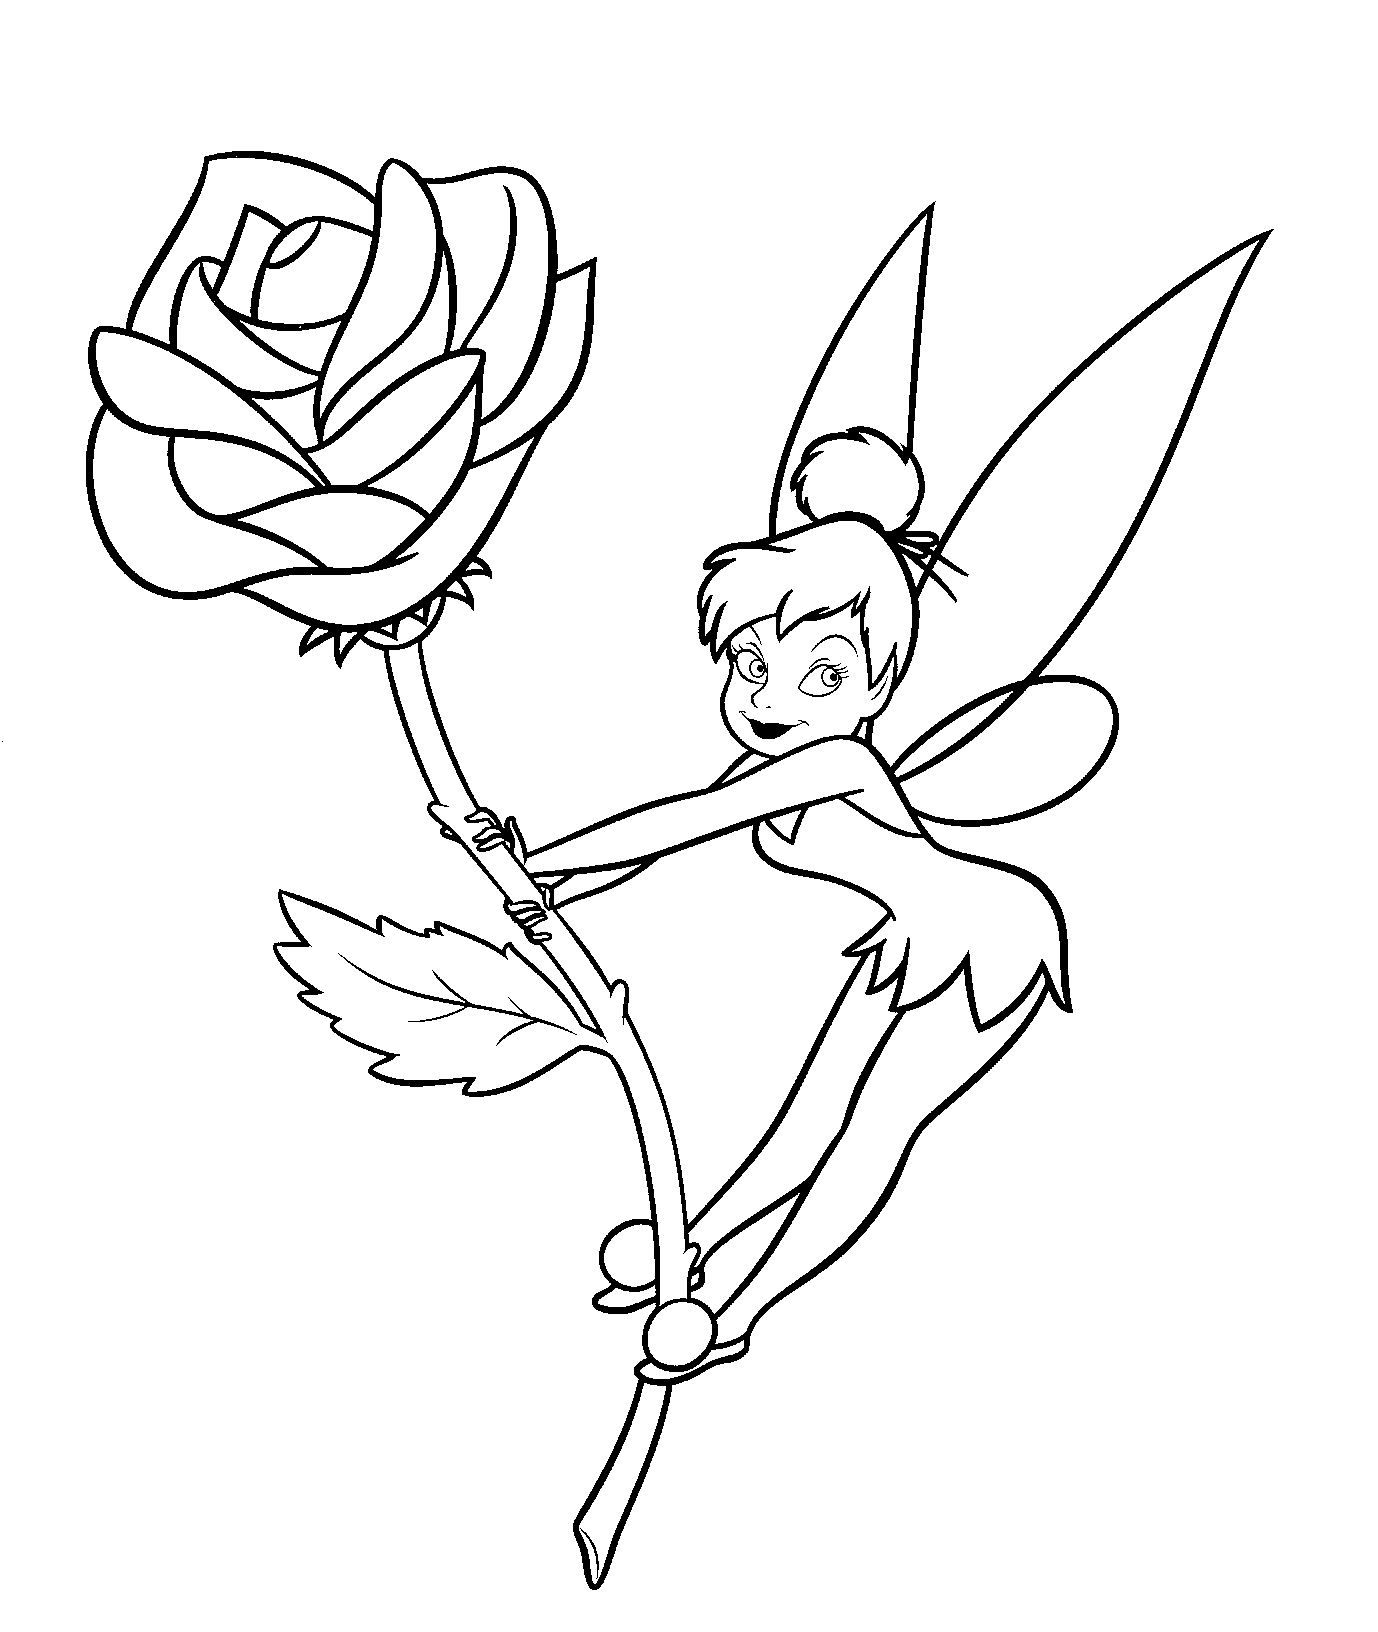 tinkerbell coloring pages | tinkerbell coloring pages | pinterest